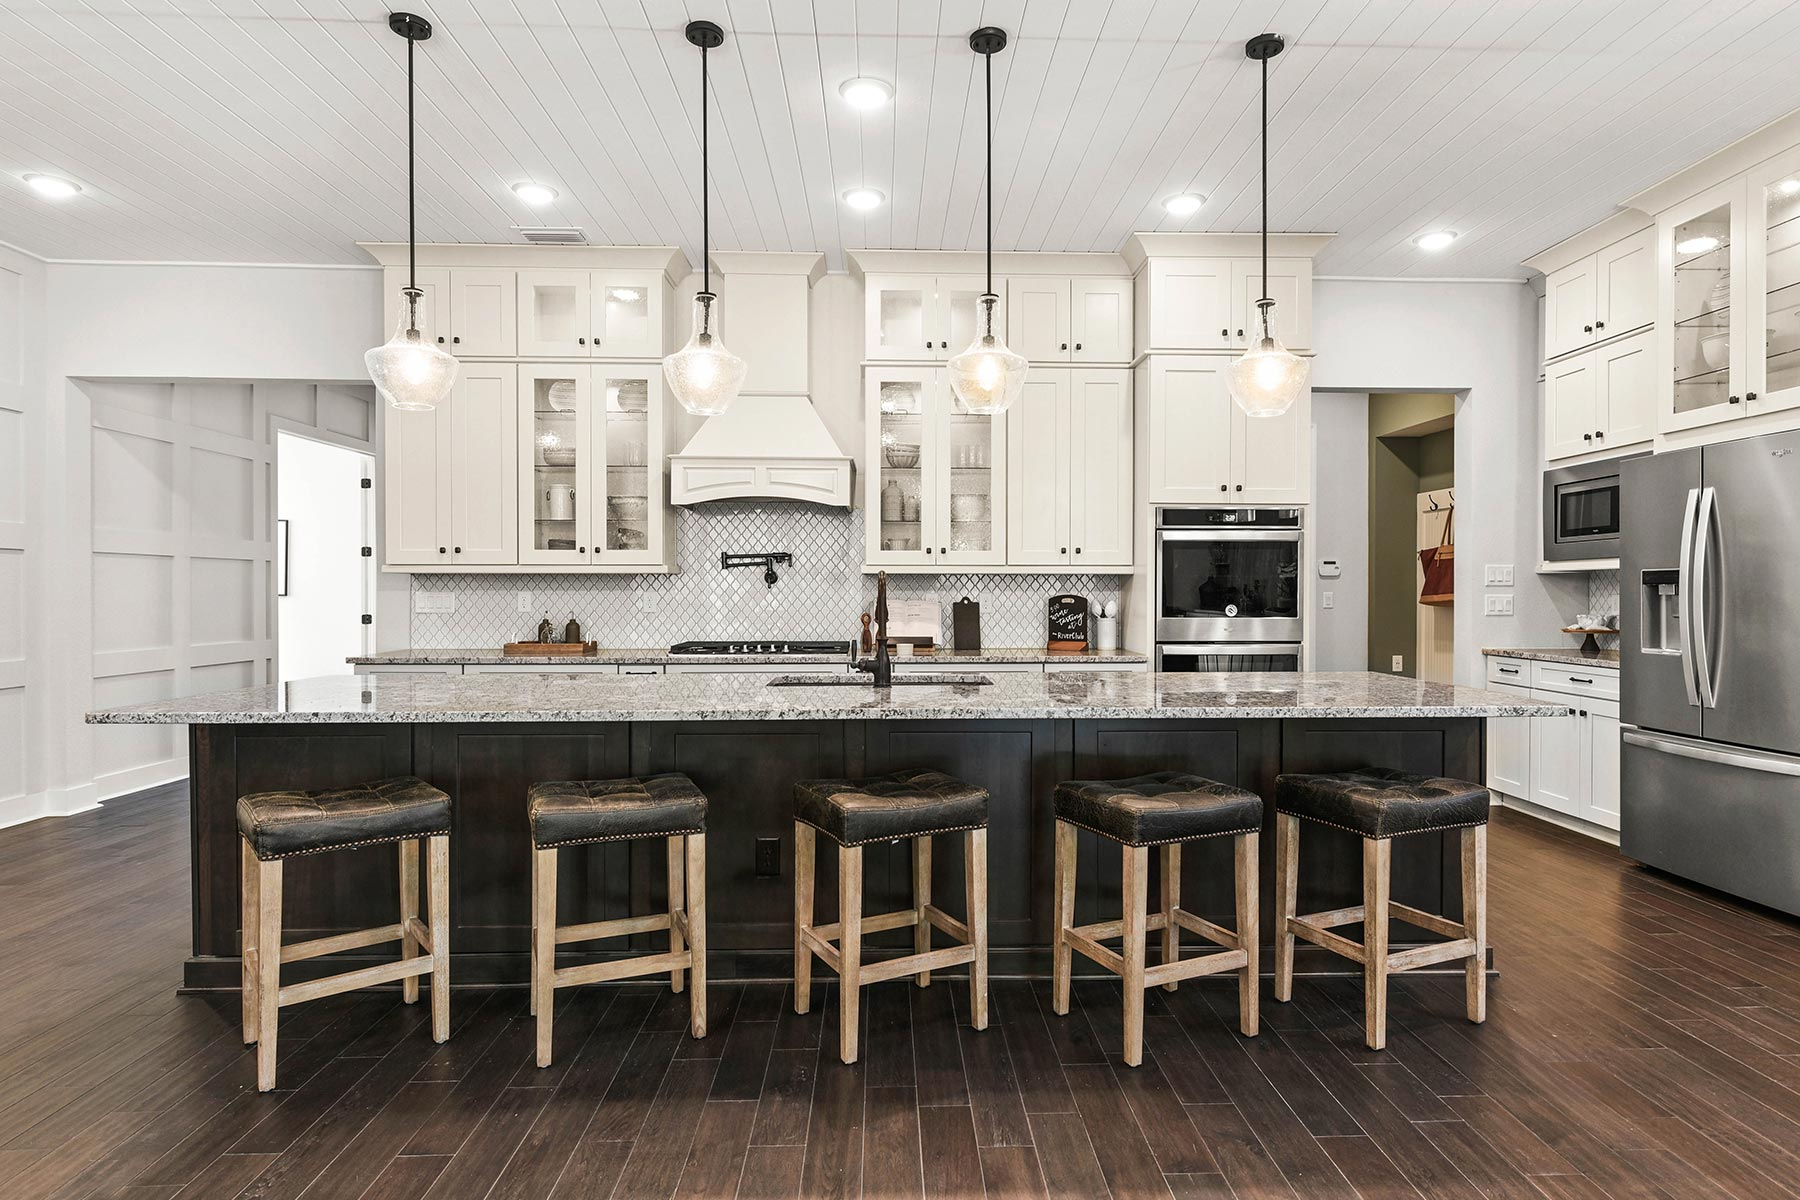 RiverTown - WaterSong Kitchen in St. Johns Florida by Mattamy Homes